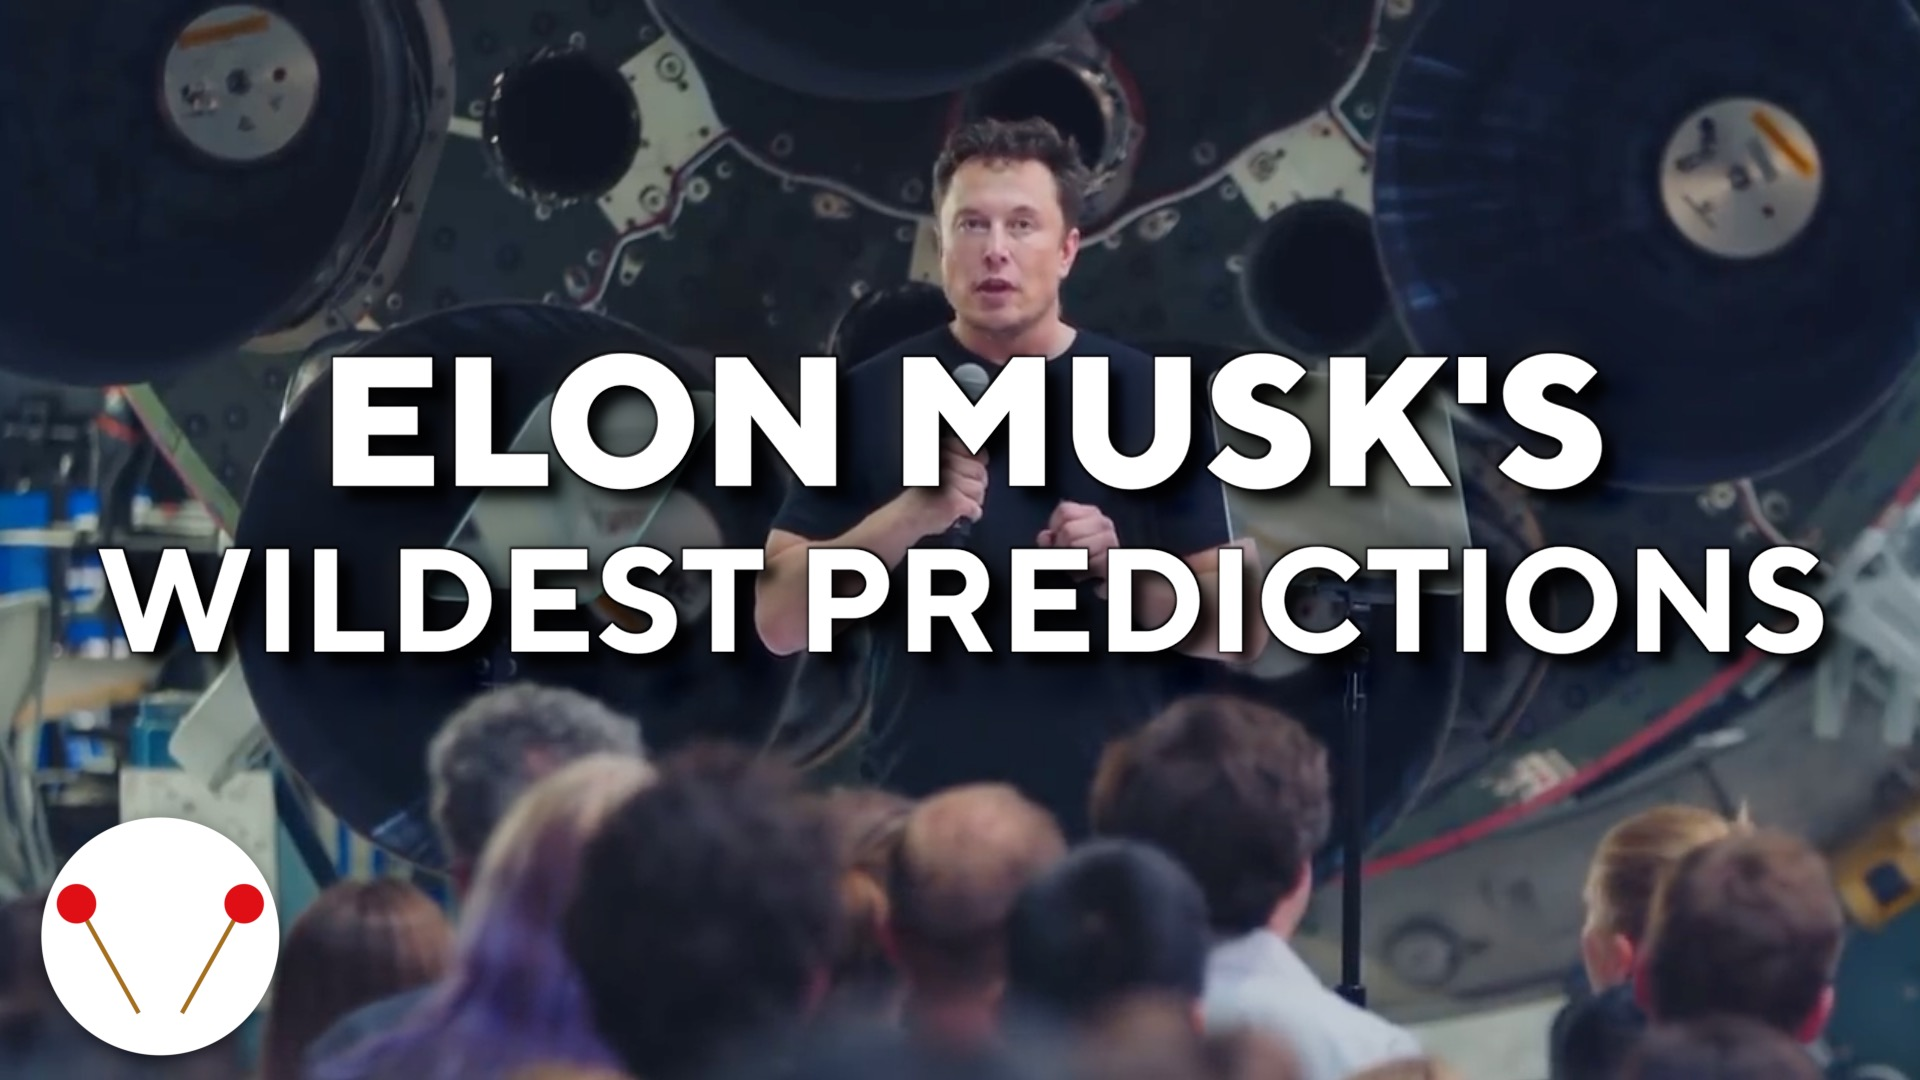 Elon Musk's 5 Wildest Predictions